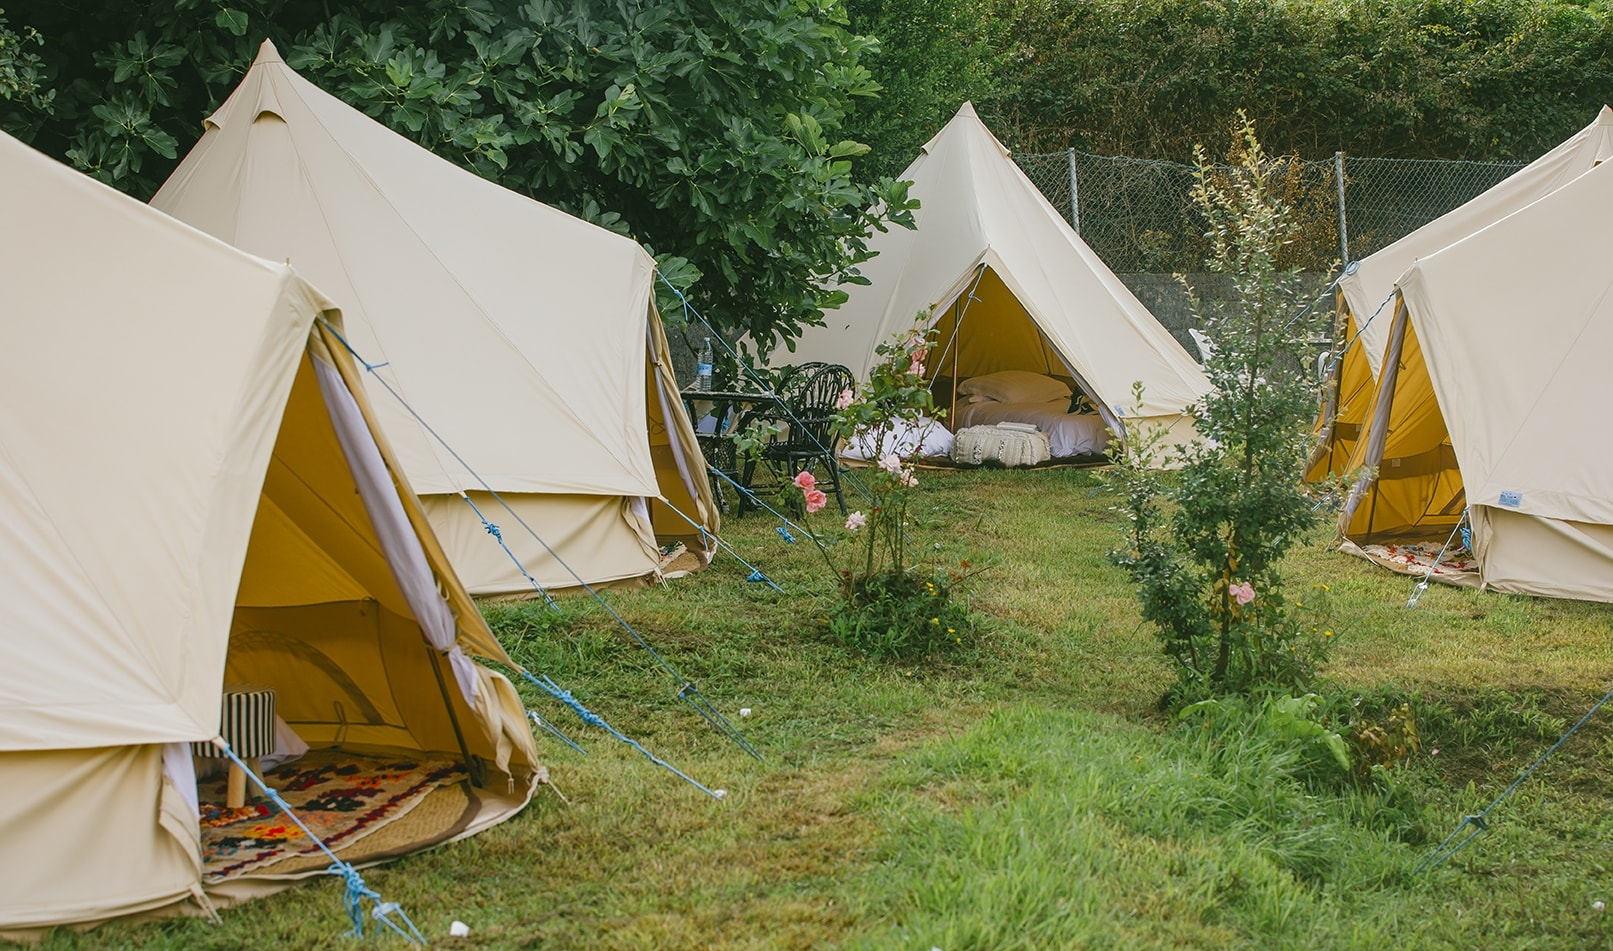 Holding a festival and want to offer glamping?Chat with the Snazzy Camp team about your needs